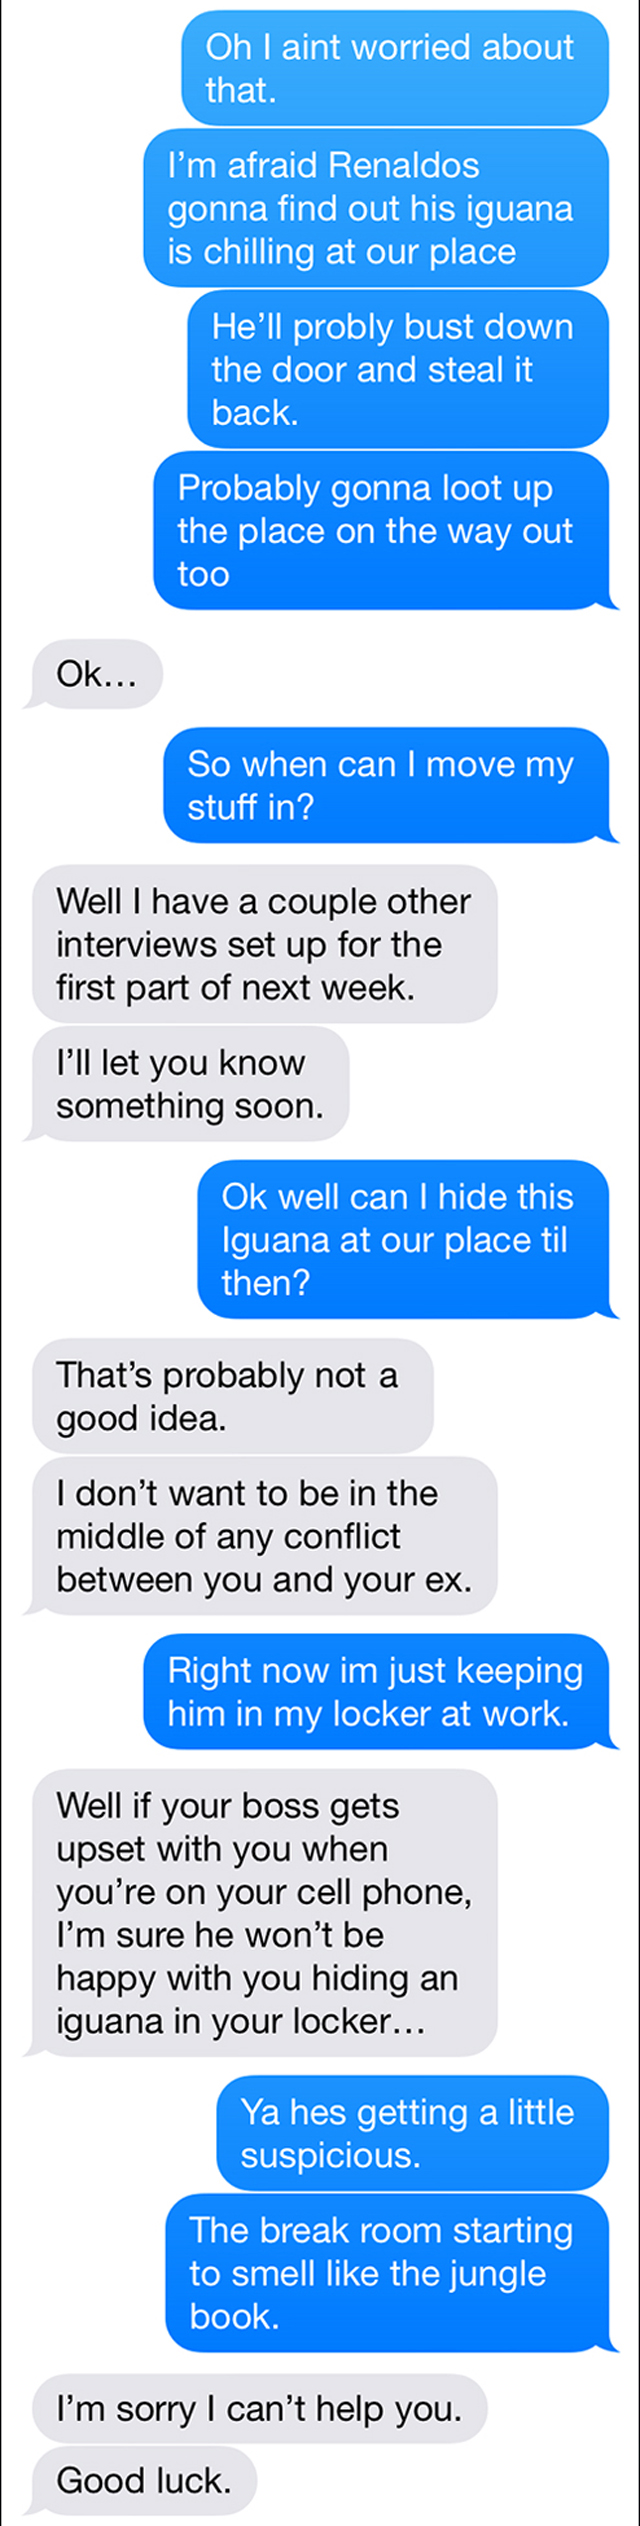 Text Trolling The Roommate Ad- The Tale Of The Iguana